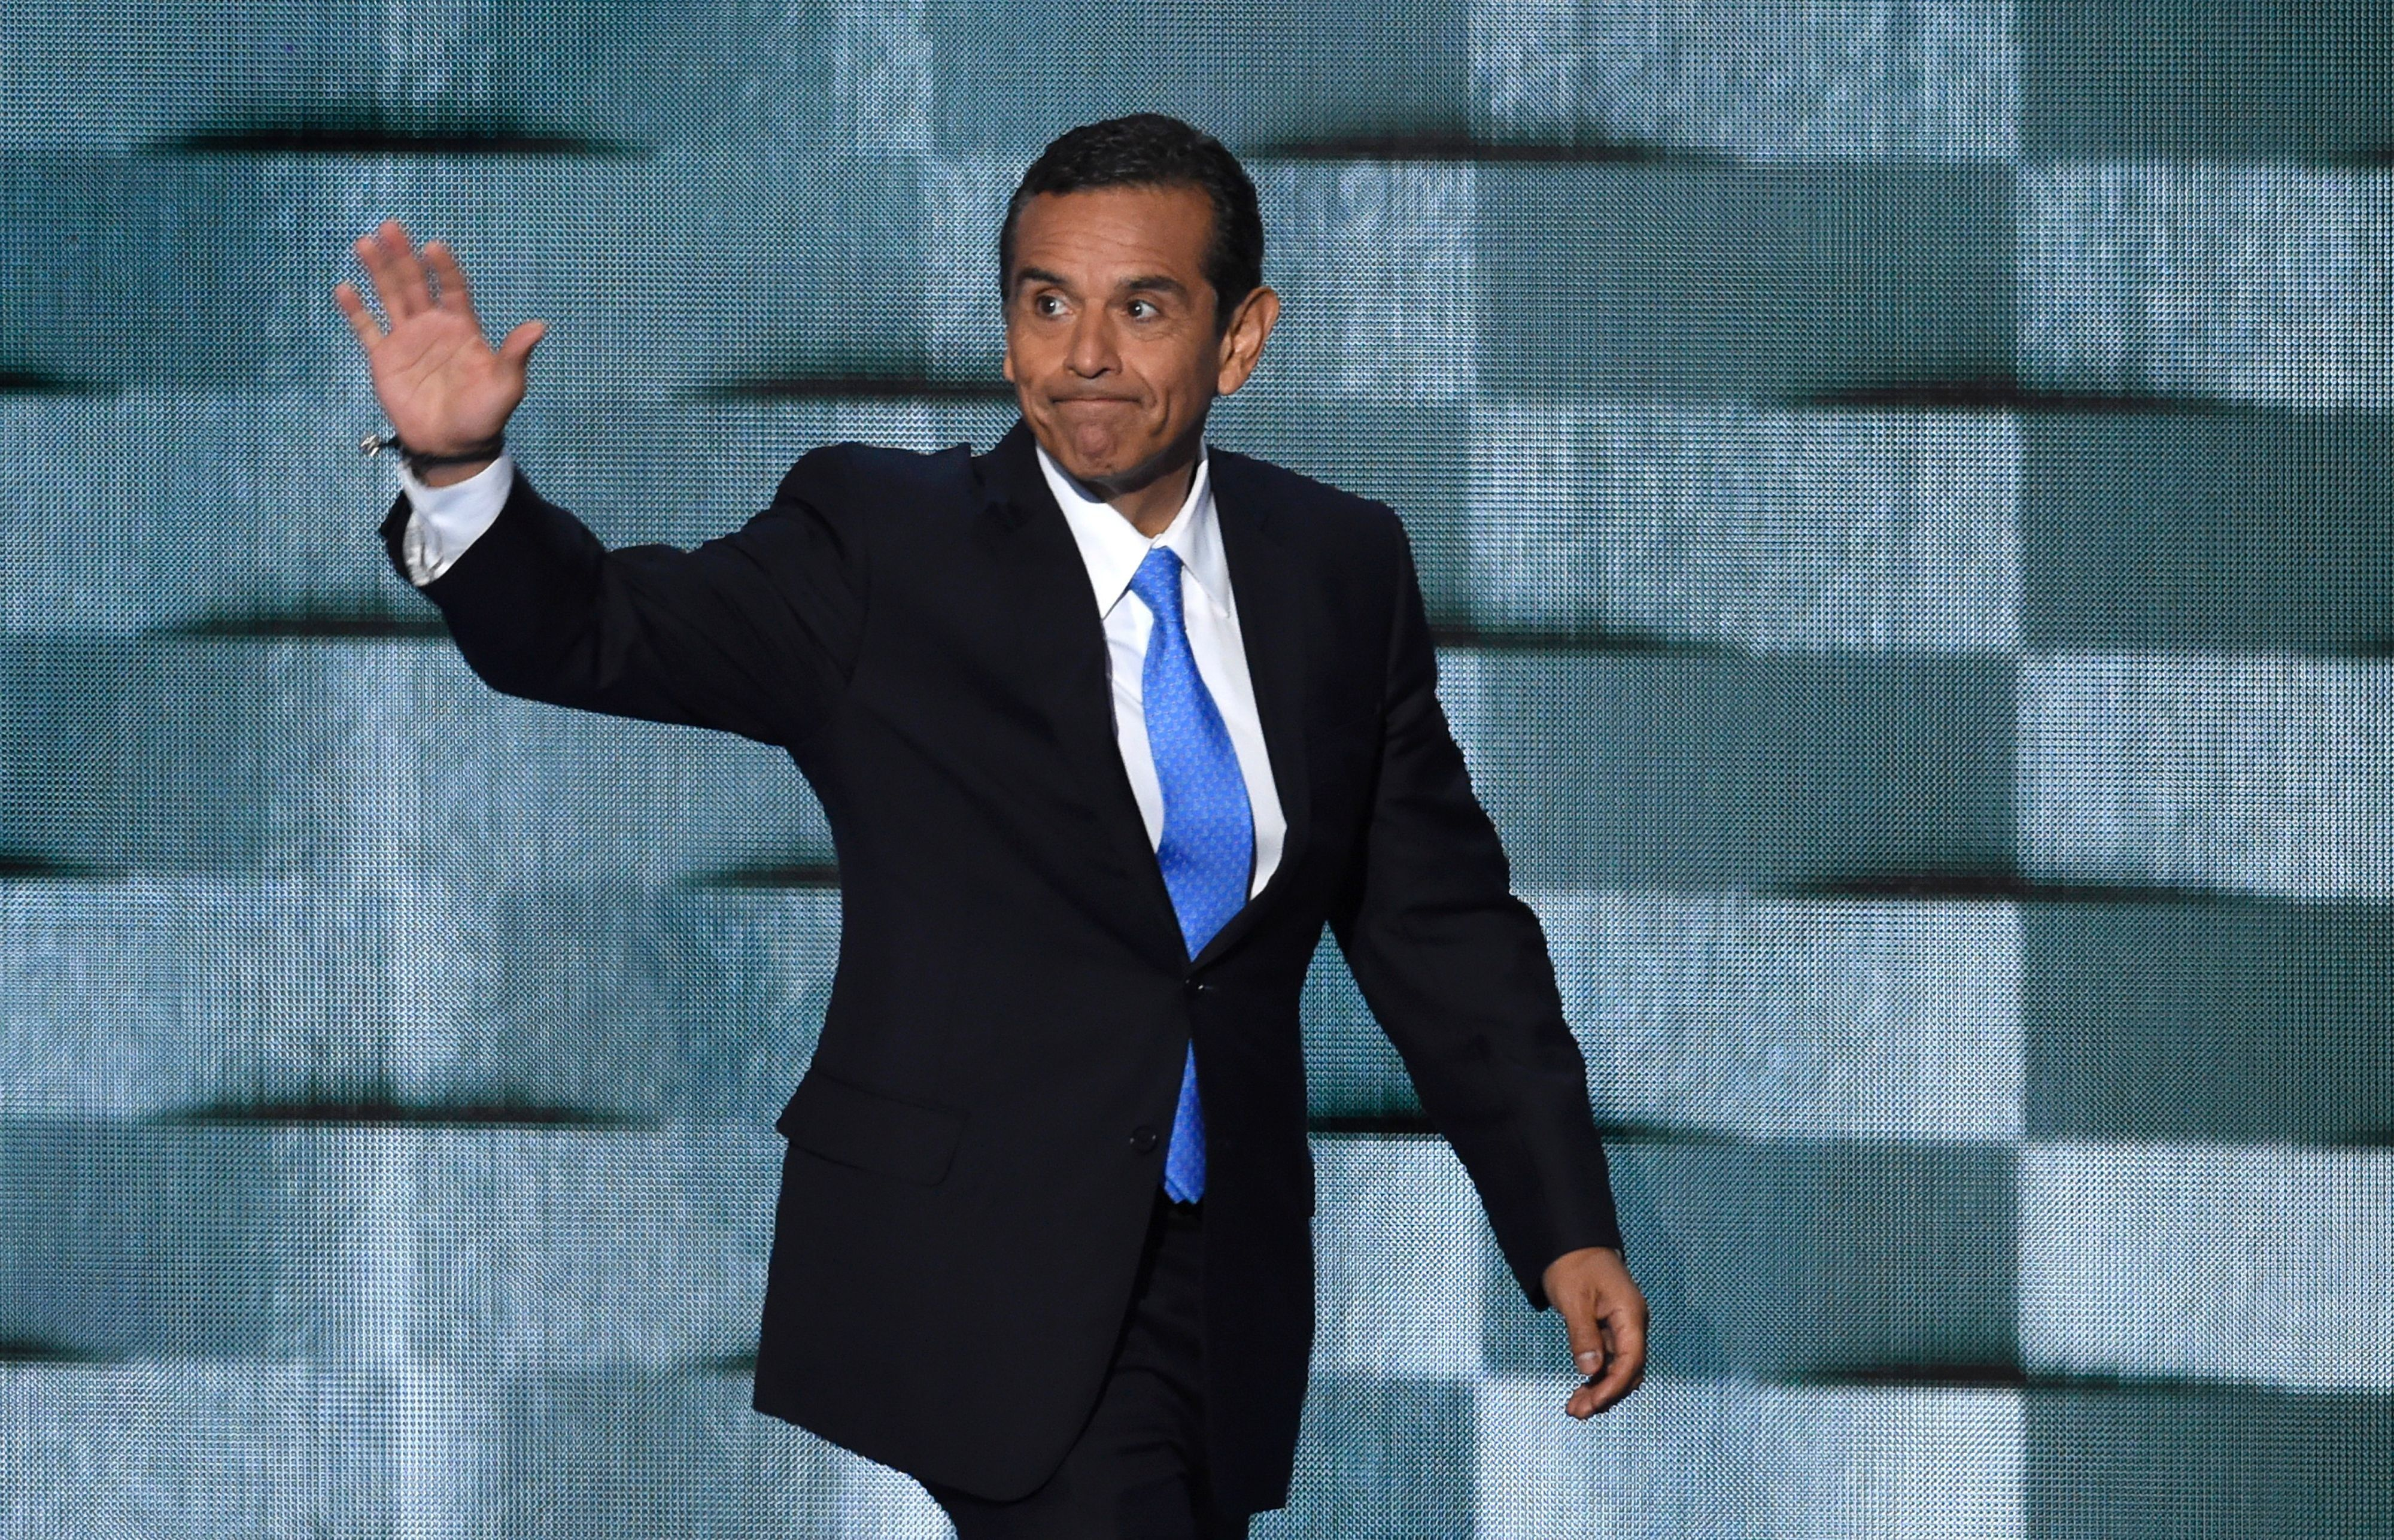 Former Mayor of Los Angeles Antonio Villaraigosa arrives to speak during the final day of the 2016 Democratic National Convention on July 28, 2016, at the Wells Fargo Center in Philadelphia, Pennsylvania. / AFP / SAUL LOEB        (Photo credit should read SAUL LOEB/AFP/Getty Images)